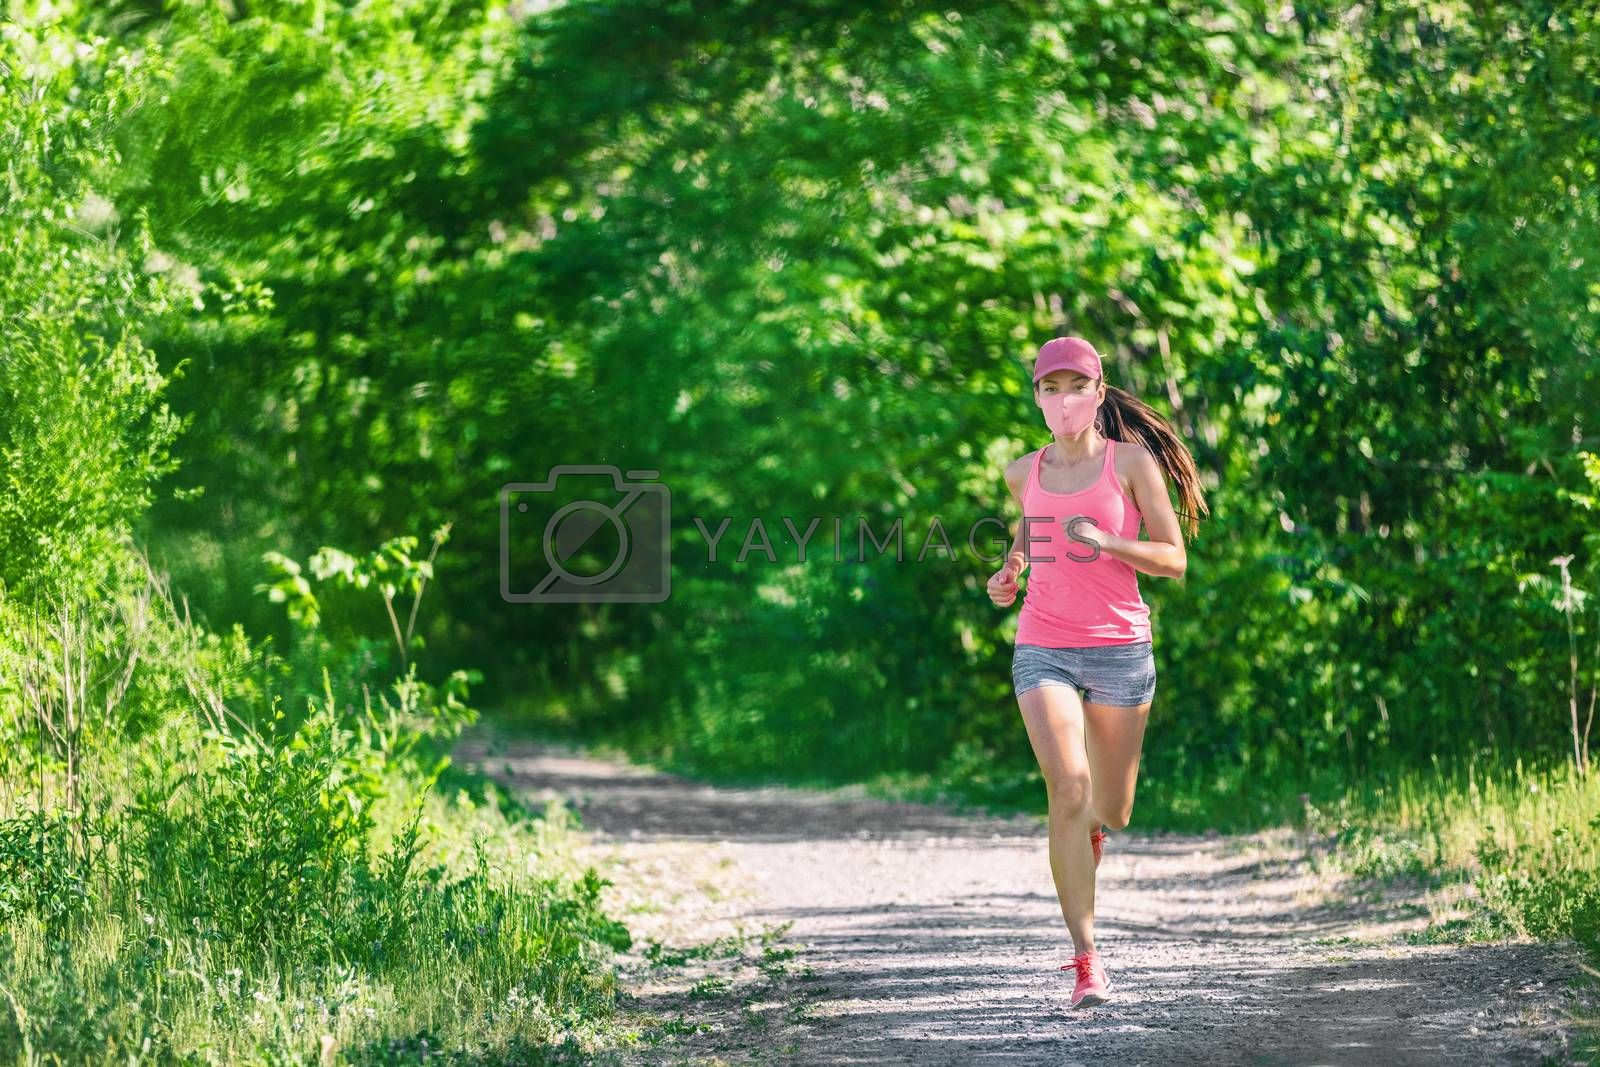 Mask corona virus COVID-19 running runner athlete wearing mask jogging outside on run workout in summer park nature. Sport lifestyle asian young woman.